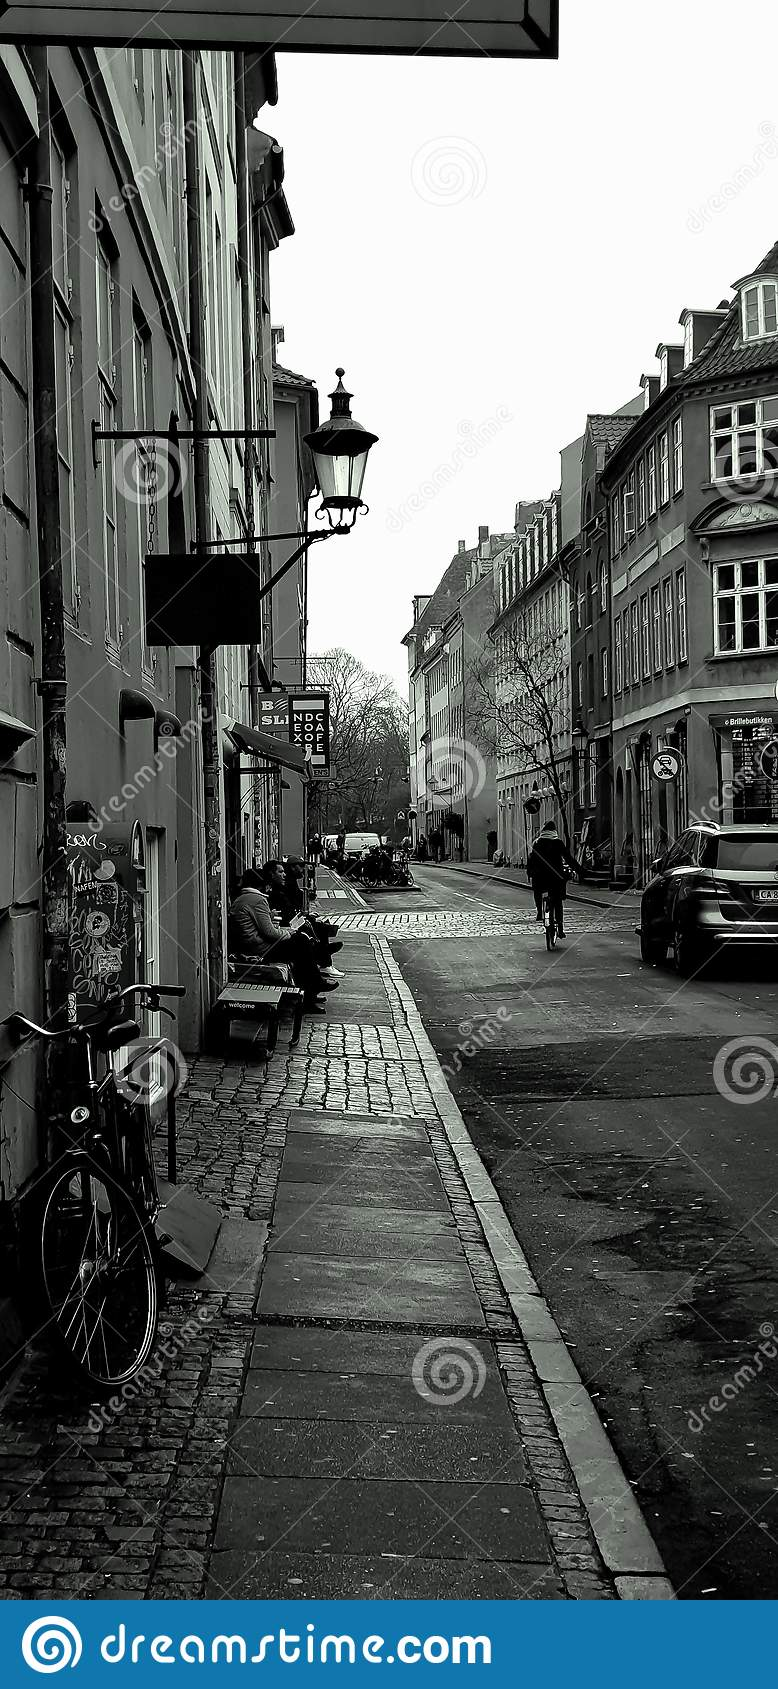 Danish capital street.The capital of Denmark. Bicycle and car on the street